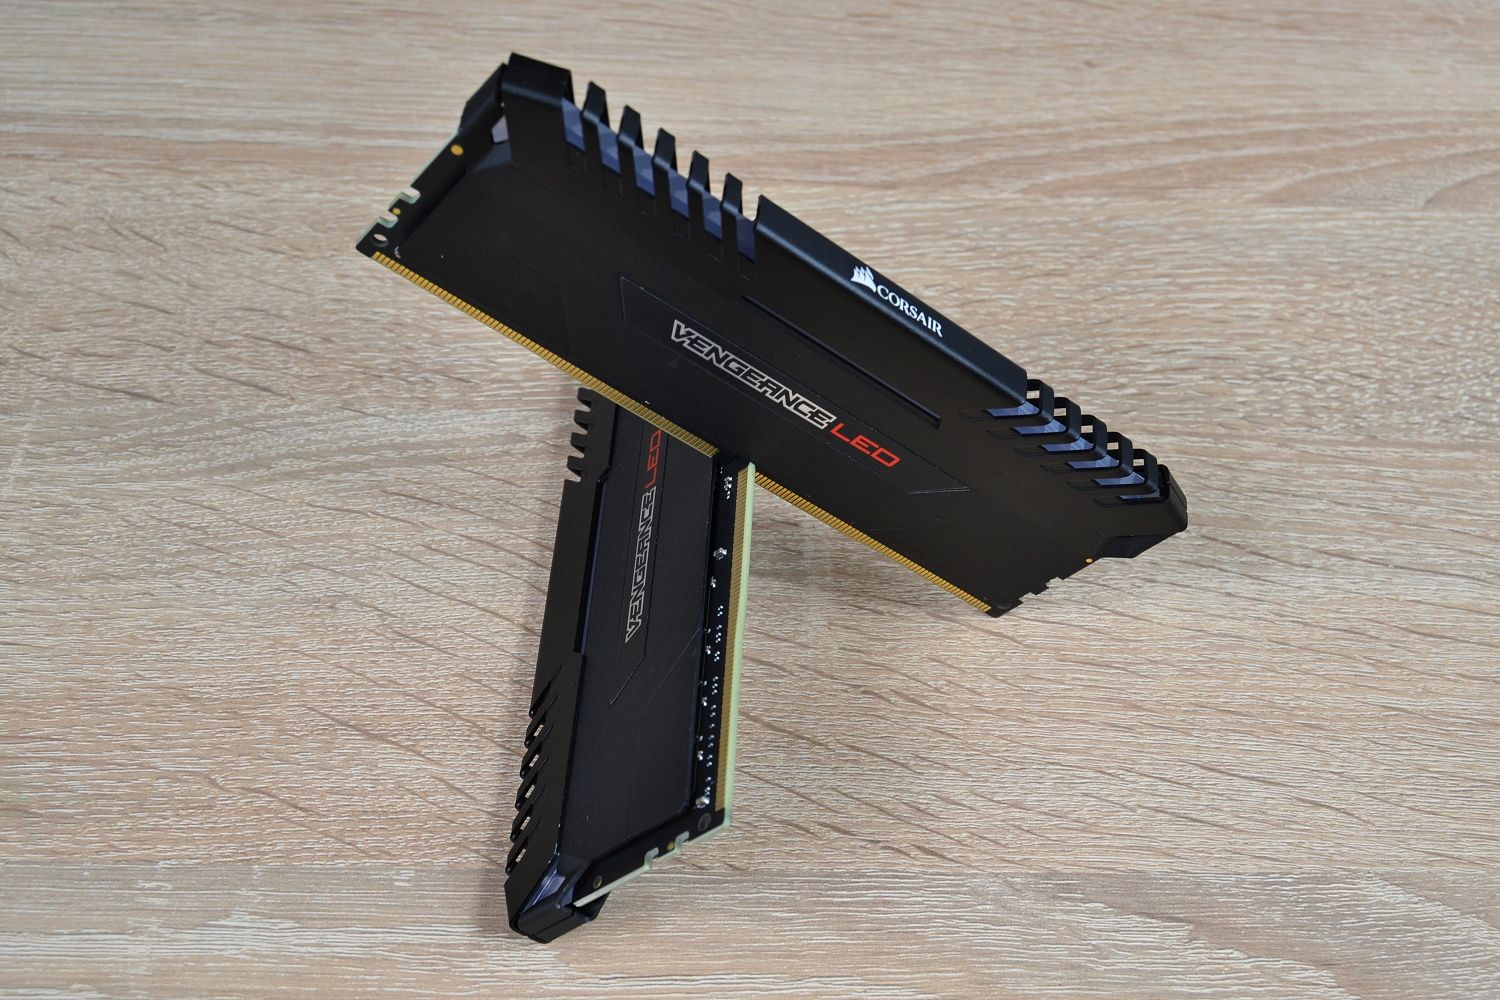 Intel PC 01 RAM